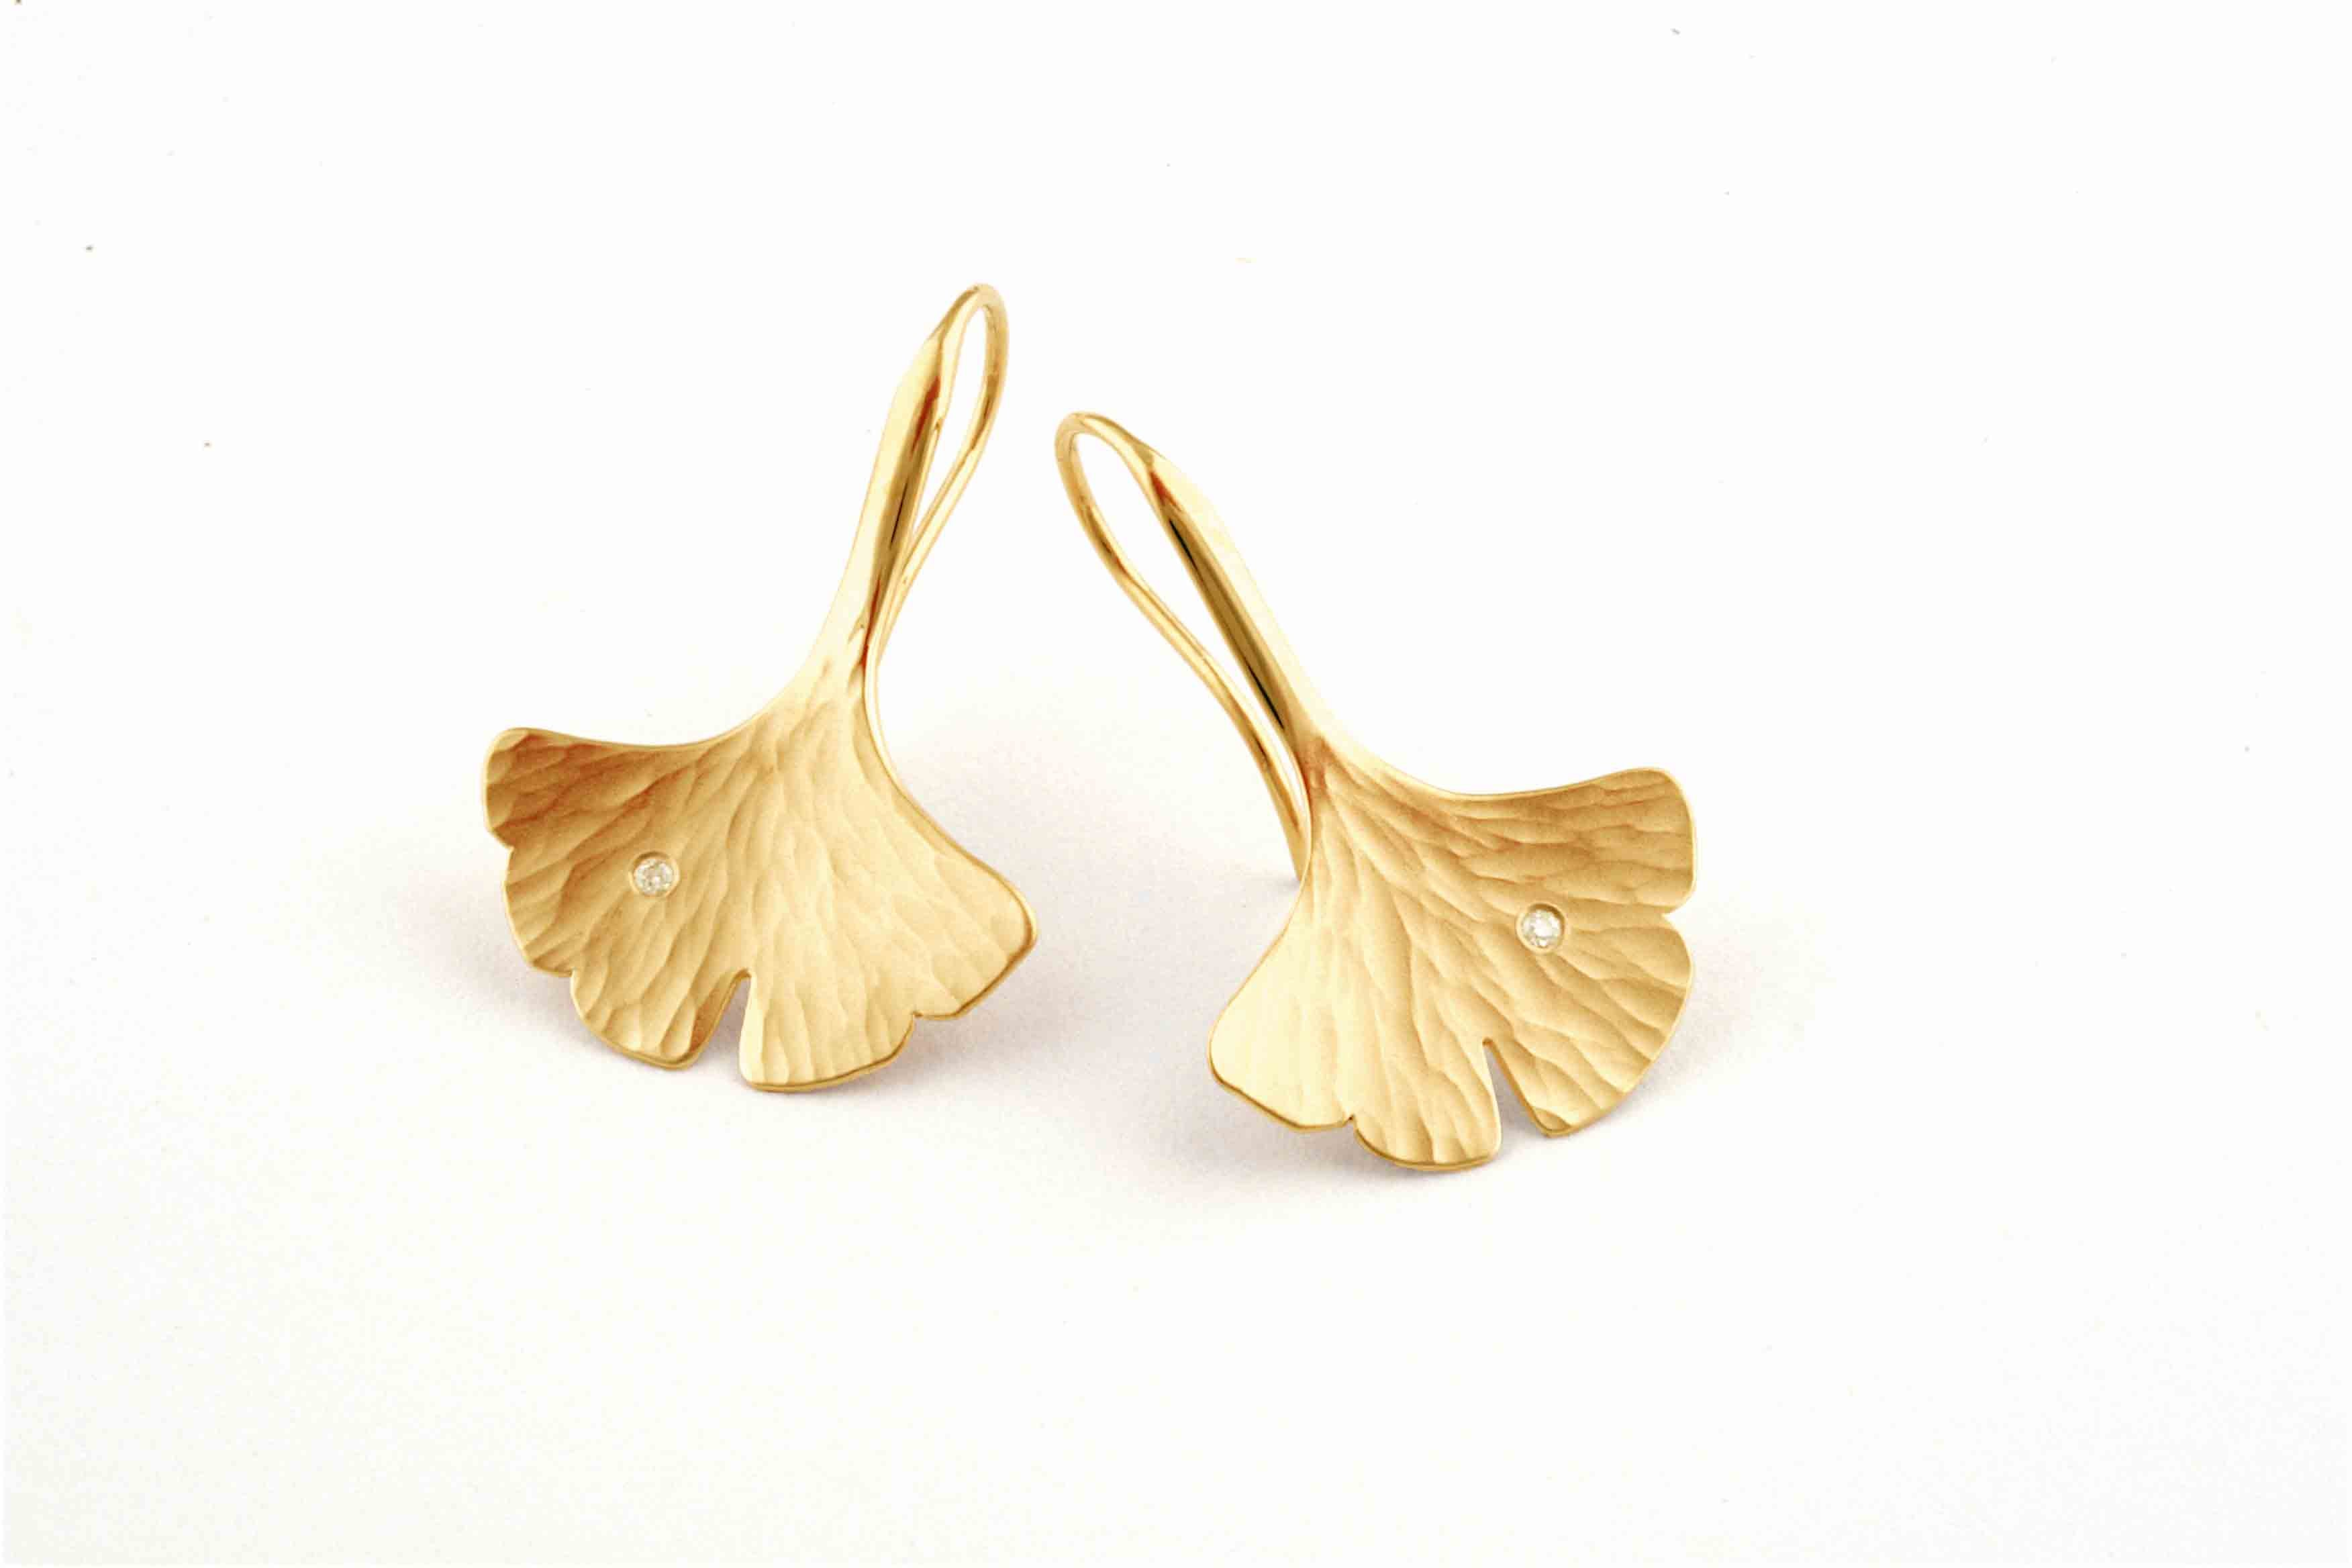 Toby Pomeroy 14K Eco Gold Ginko Leaf Earrings